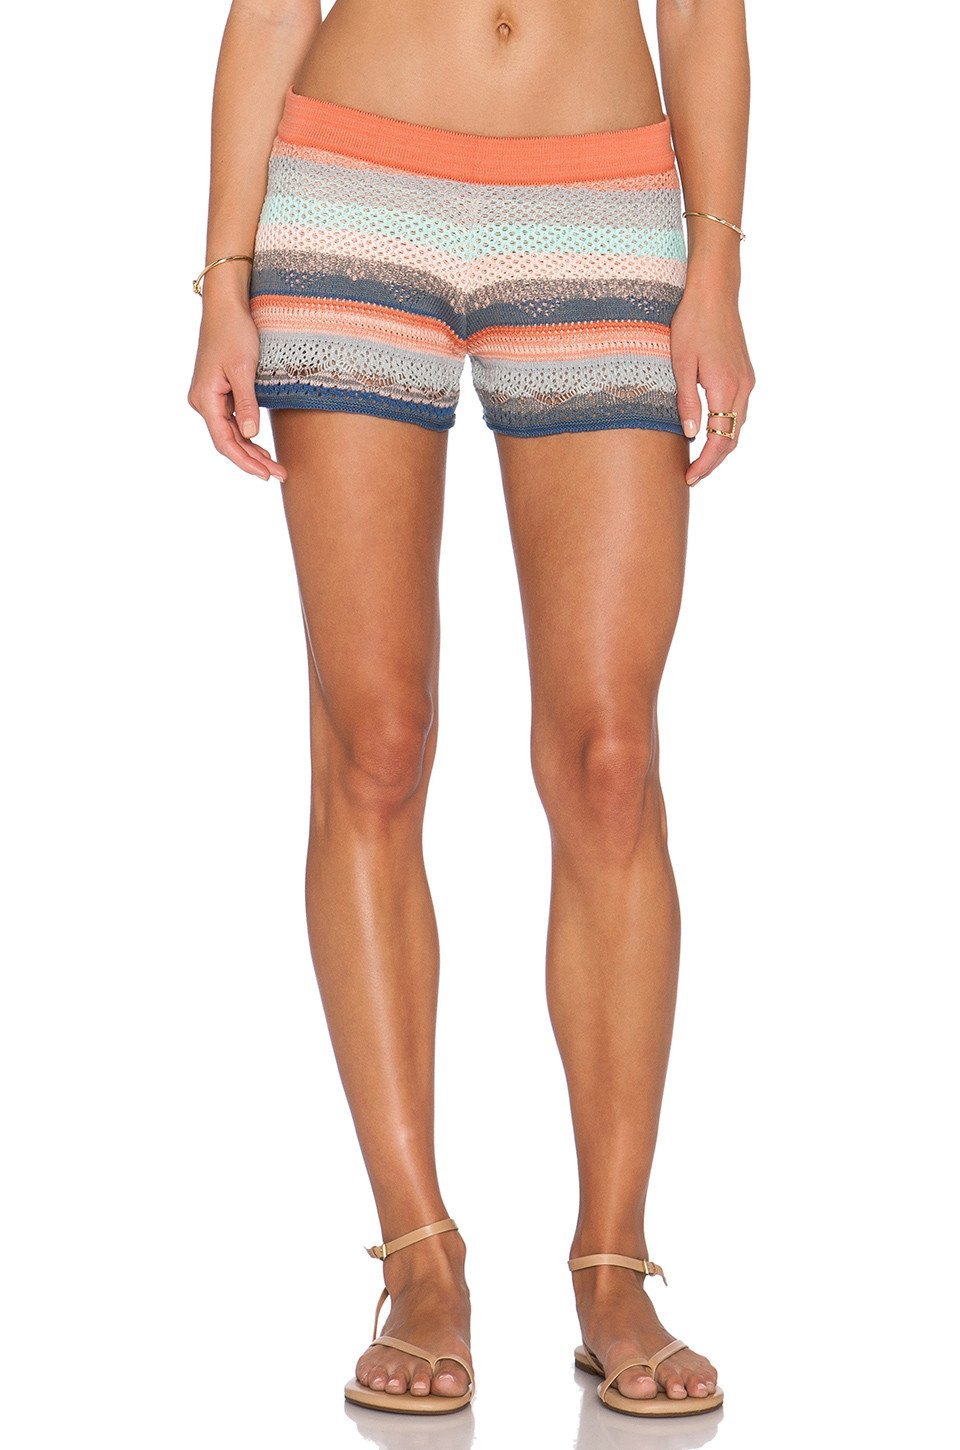 Cleo Short - Kustom Label - 1